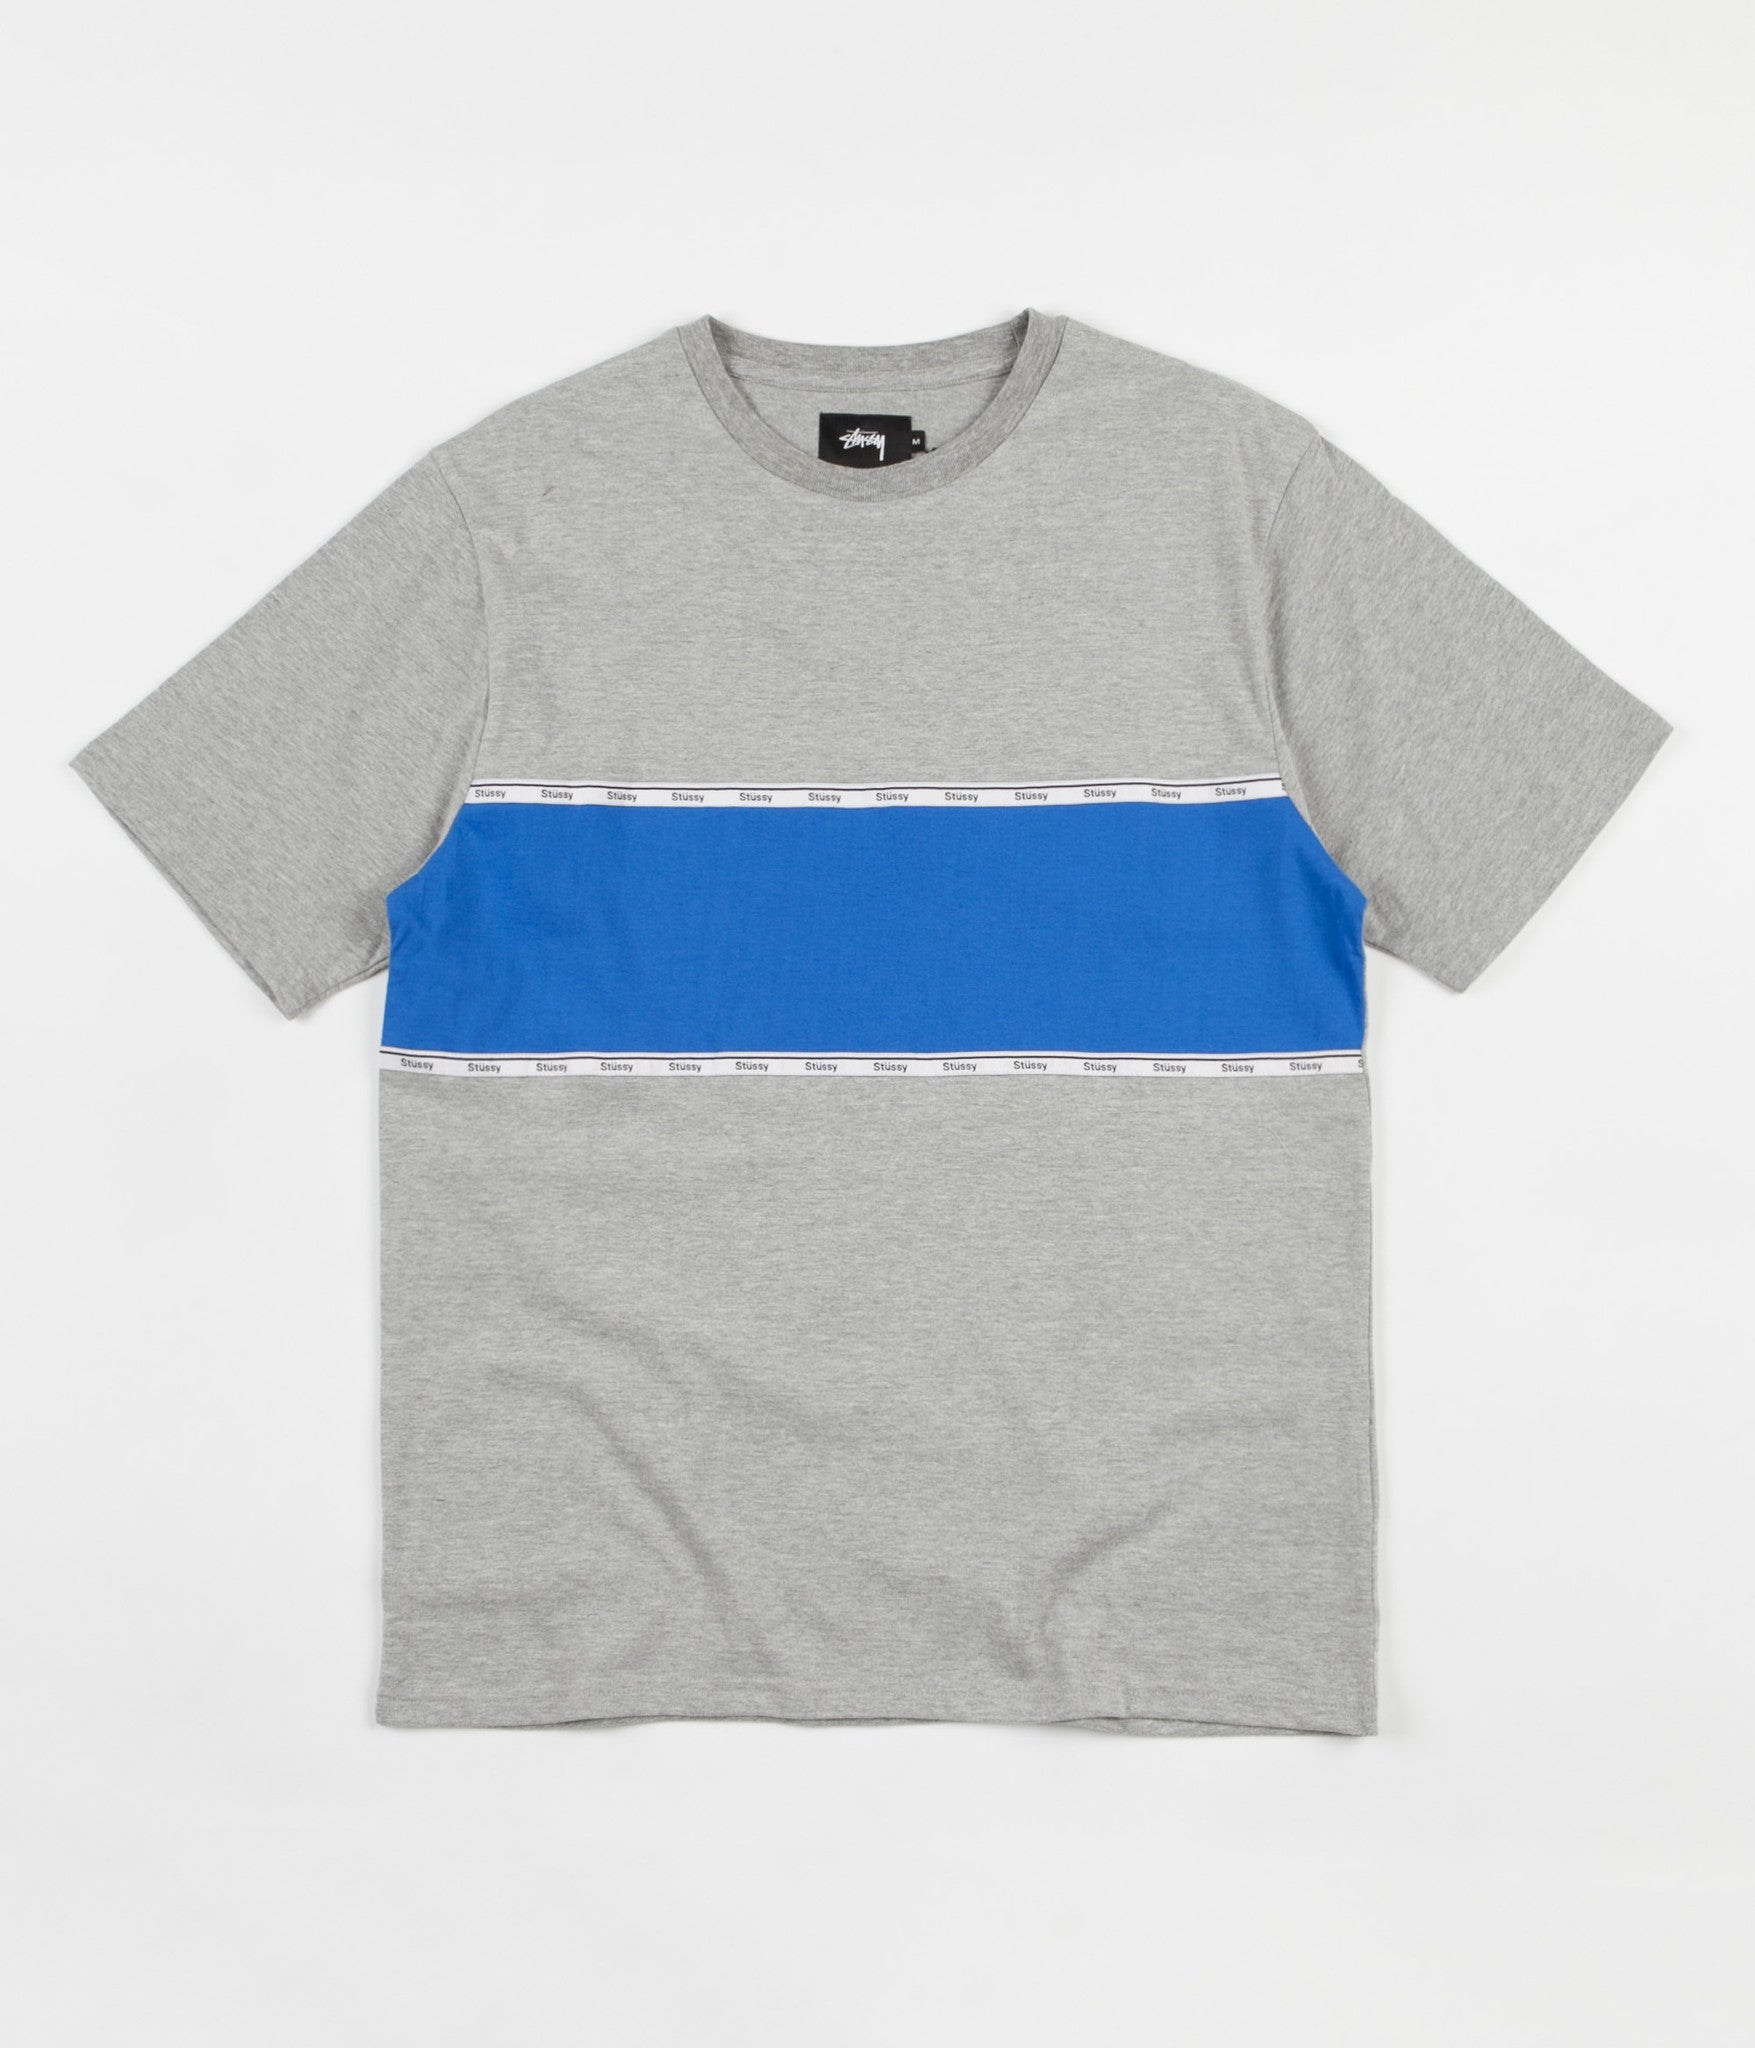 Stussy Tape Stripe T-Shirt - Grey Heather